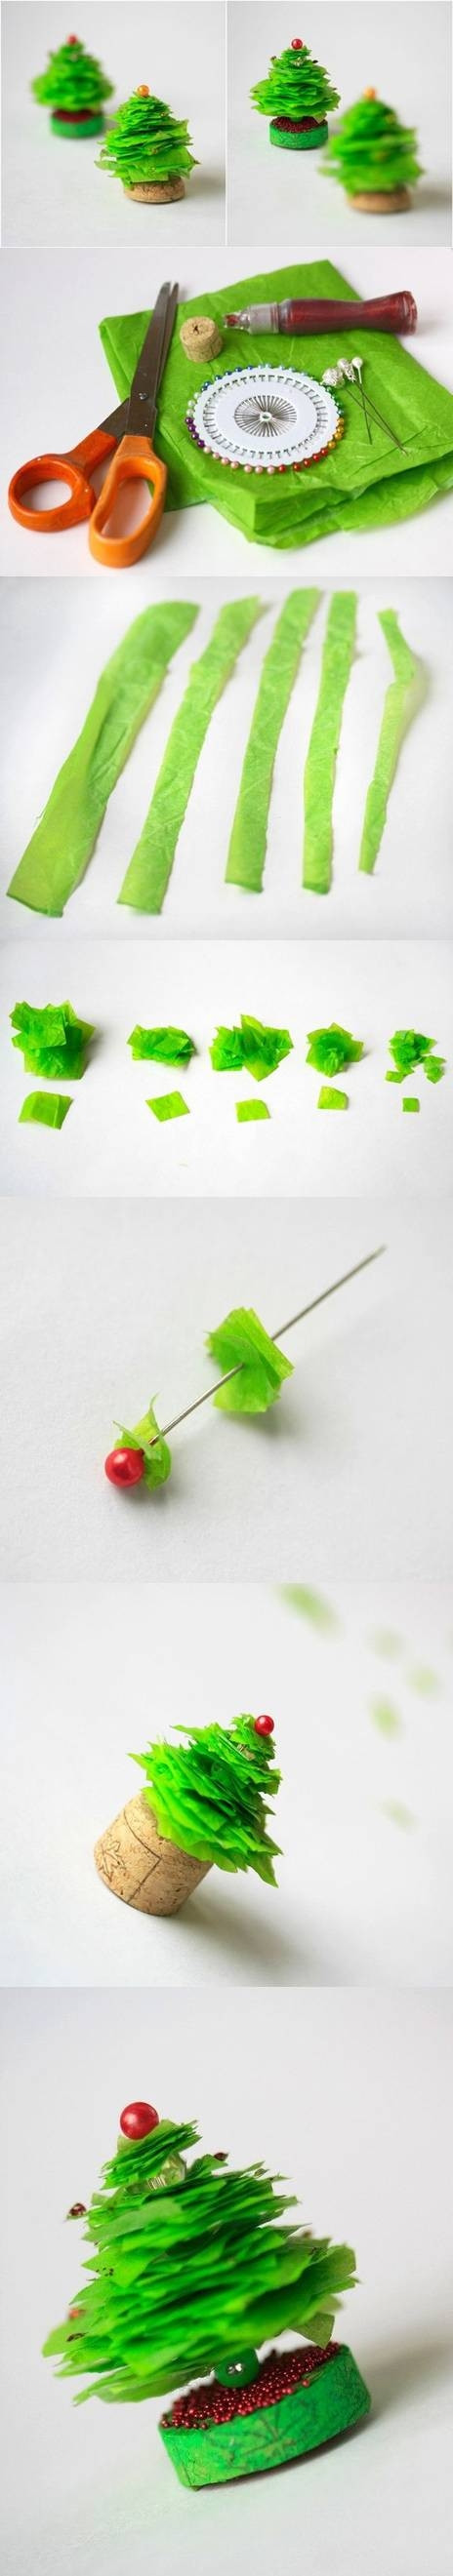 Best ideas about DIY Mini Christmas Trees . Save or Pin DIY Mini Christmas Tree Craft Tutorial s Now.